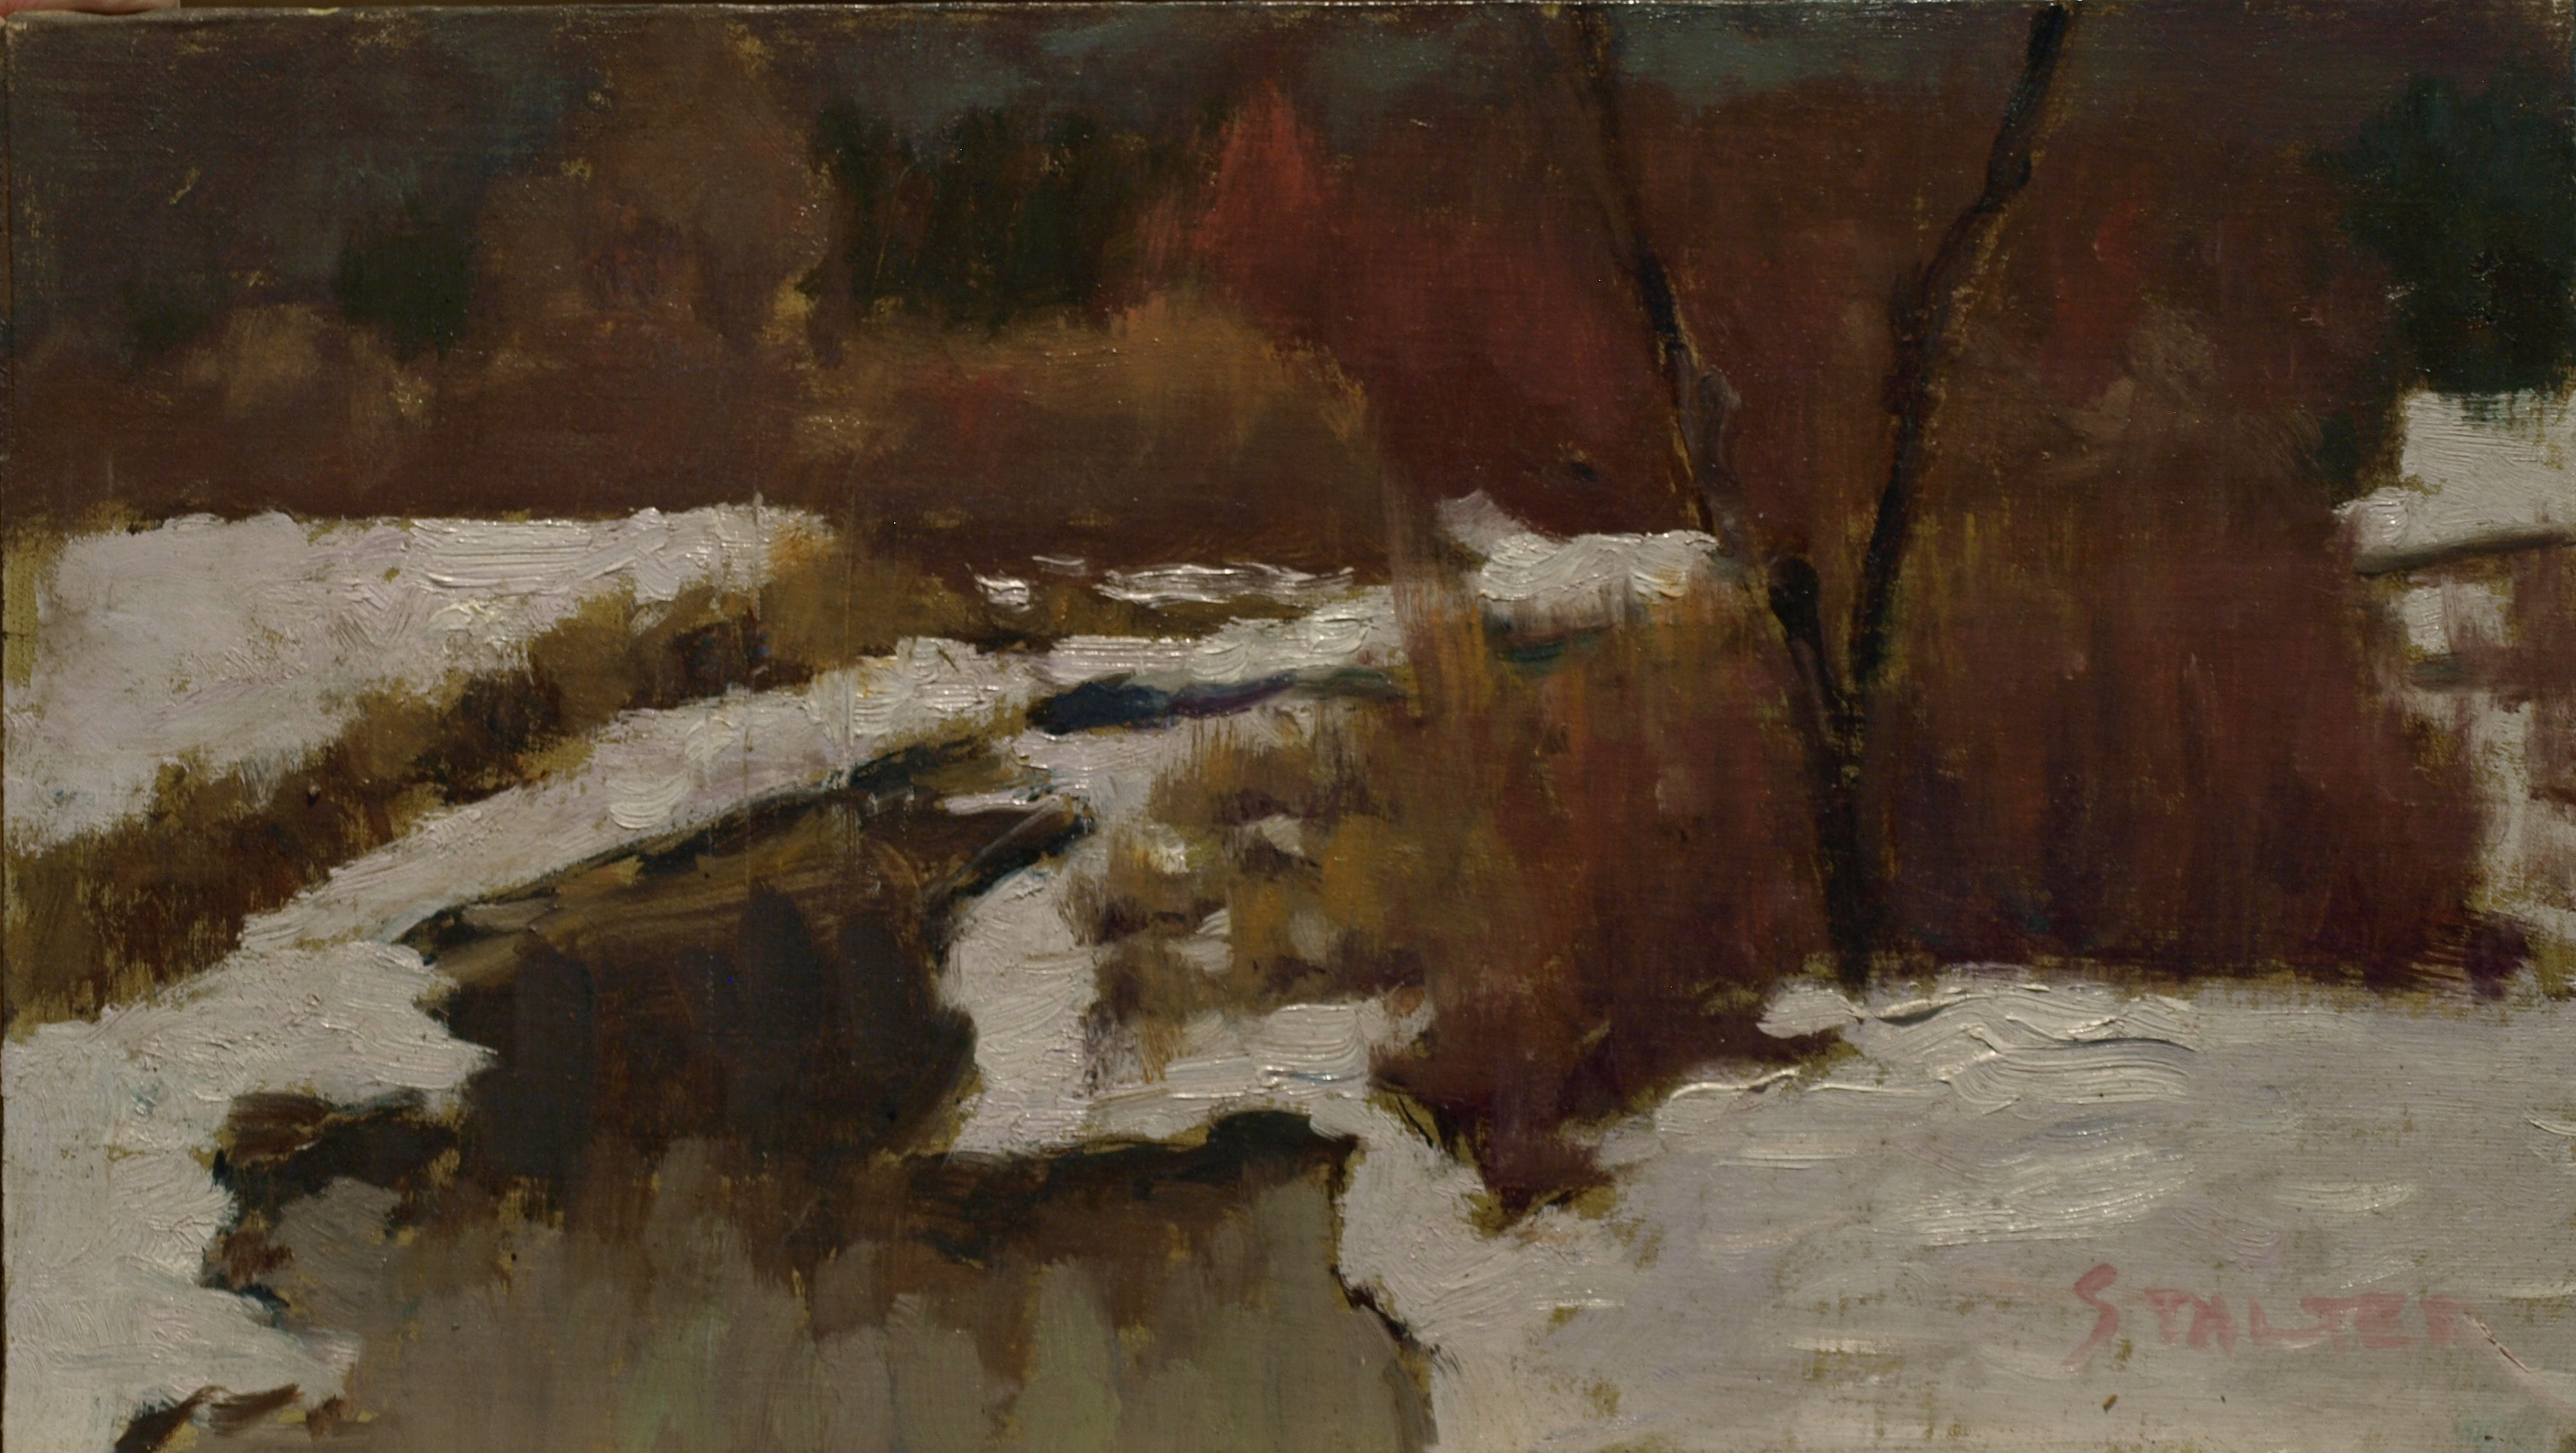 Winterlocked Brook, Oil on Canvas on Panel, 8 x 14 Inches, by Richard Stalter, $220